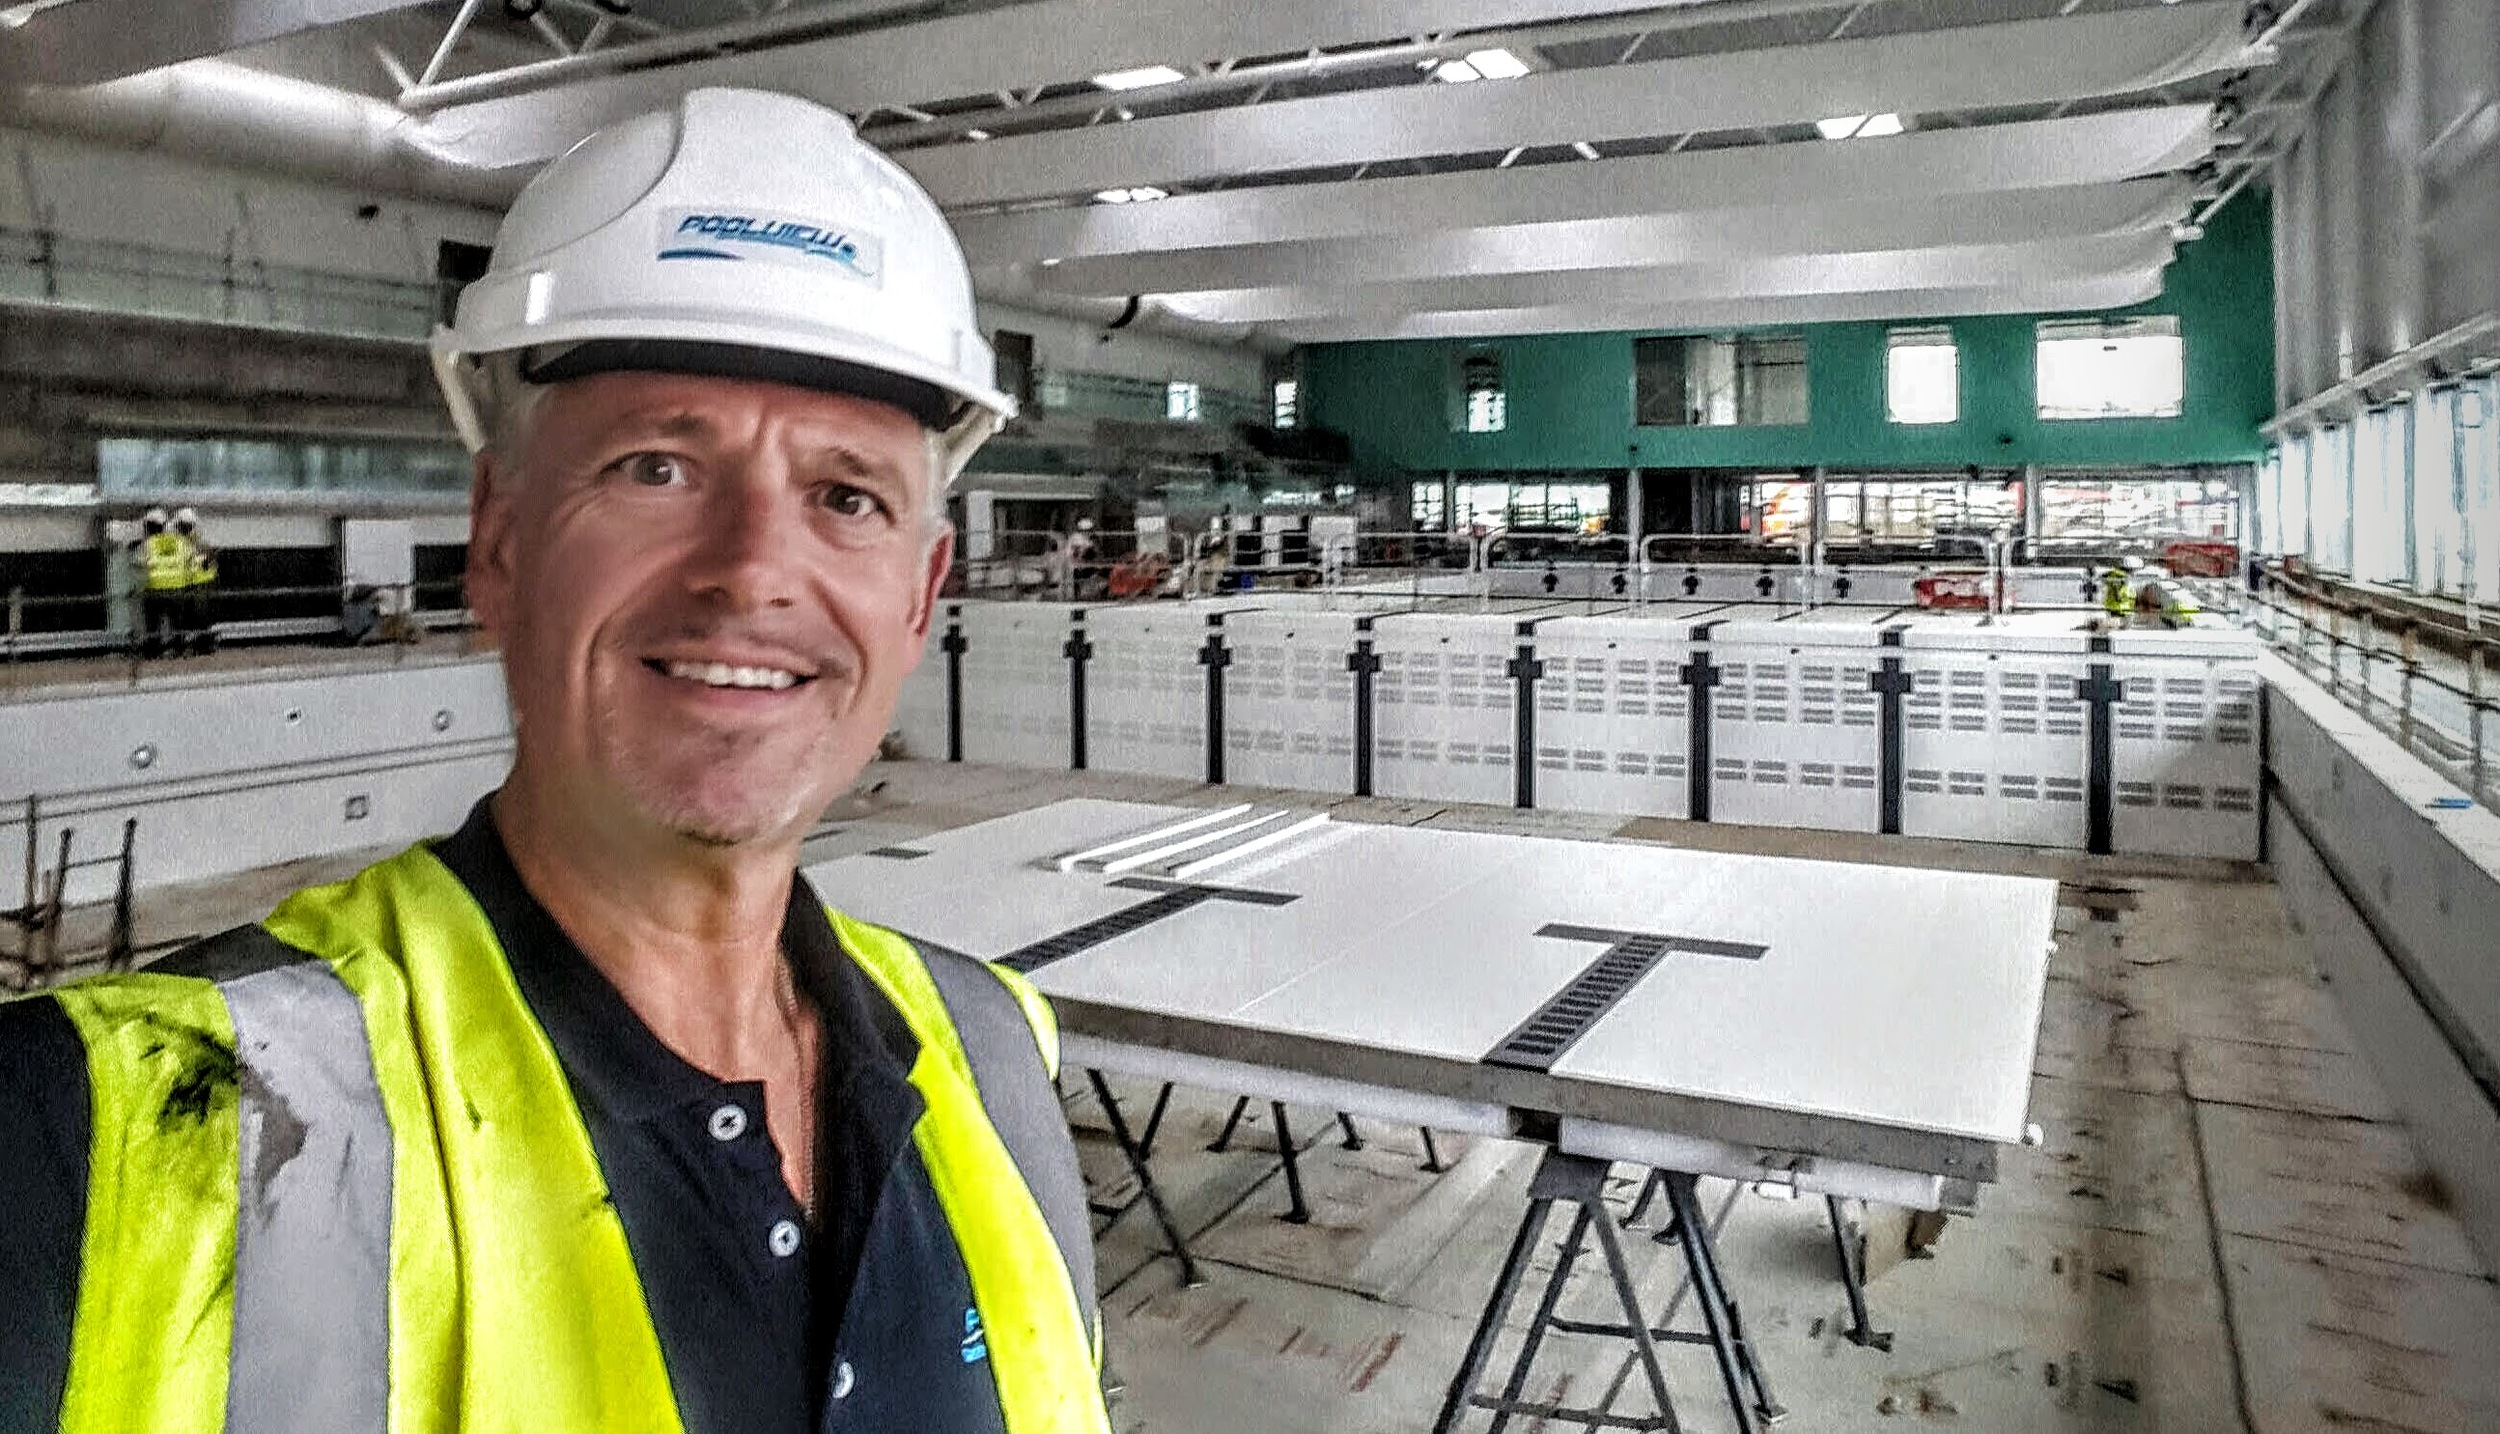 Robin McGloughlin with the sub-aqua dive pit moving floor in the background